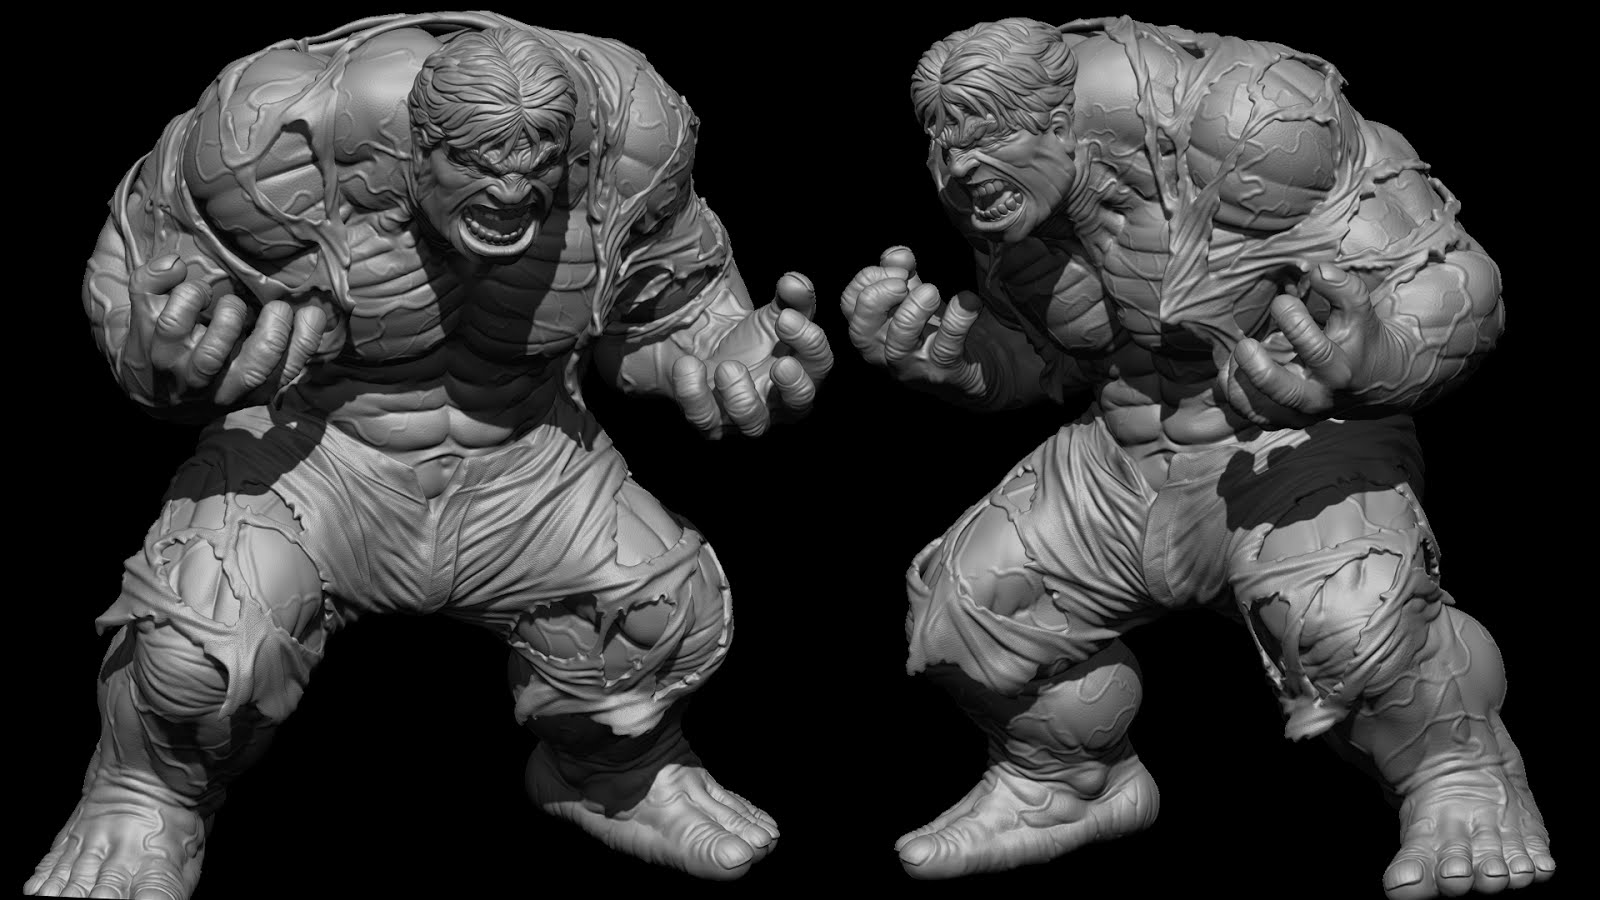 3d Wallpaper Singapore Miguel Hern 225 Ndez Urbina Hulk Transformation Contest